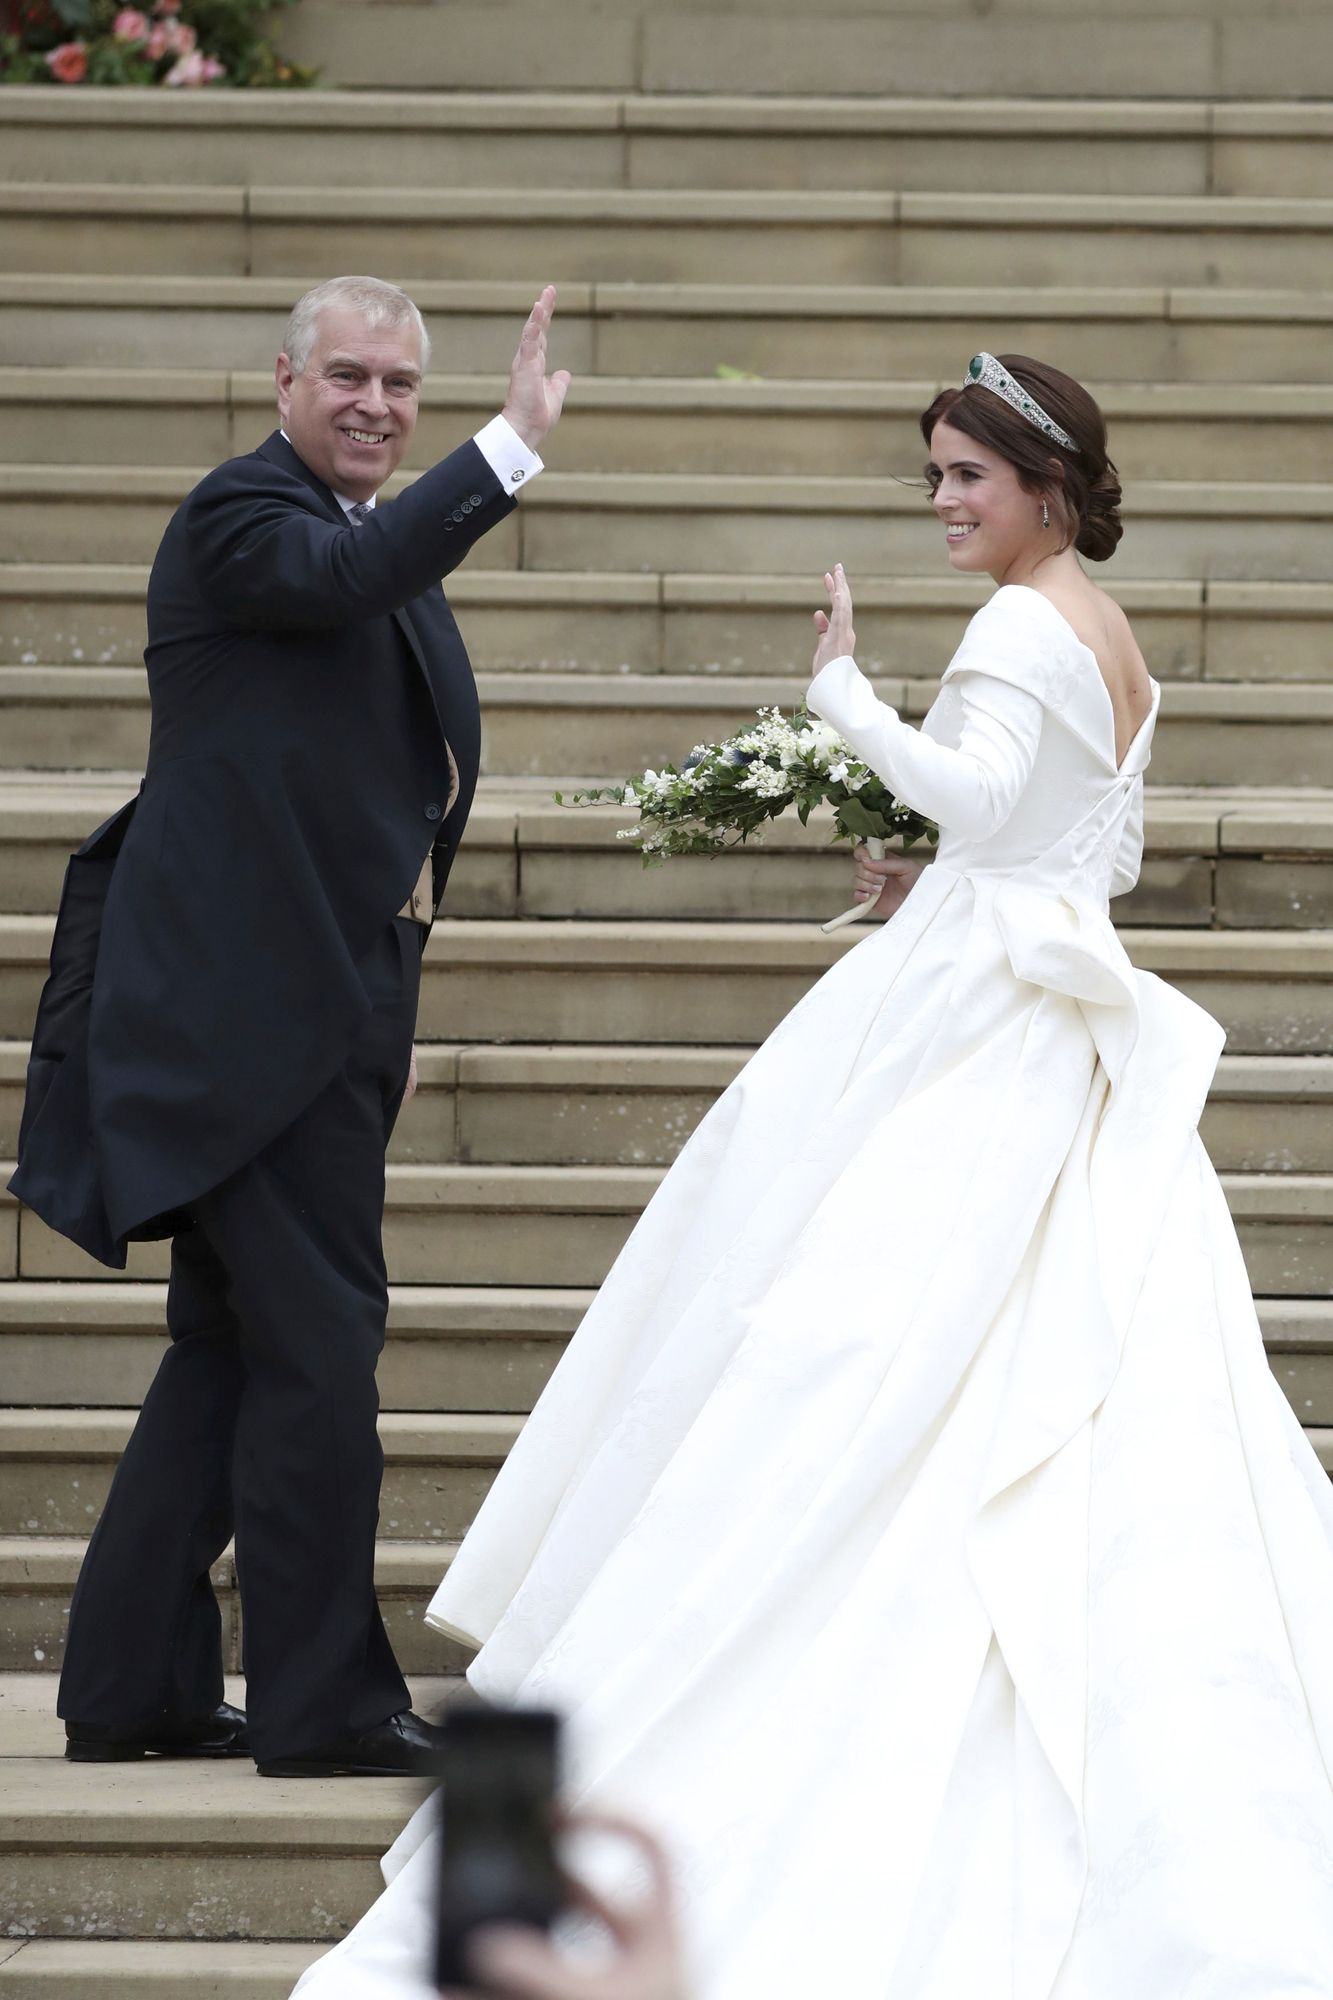 See Princess Eugenie S Open Back Wedding Dress Designed To Feature Her Spinal Surgery Scar Eugenie Wedding Royal Wedding Gowns Princess Wedding [ 2000 x 1333 Pixel ]